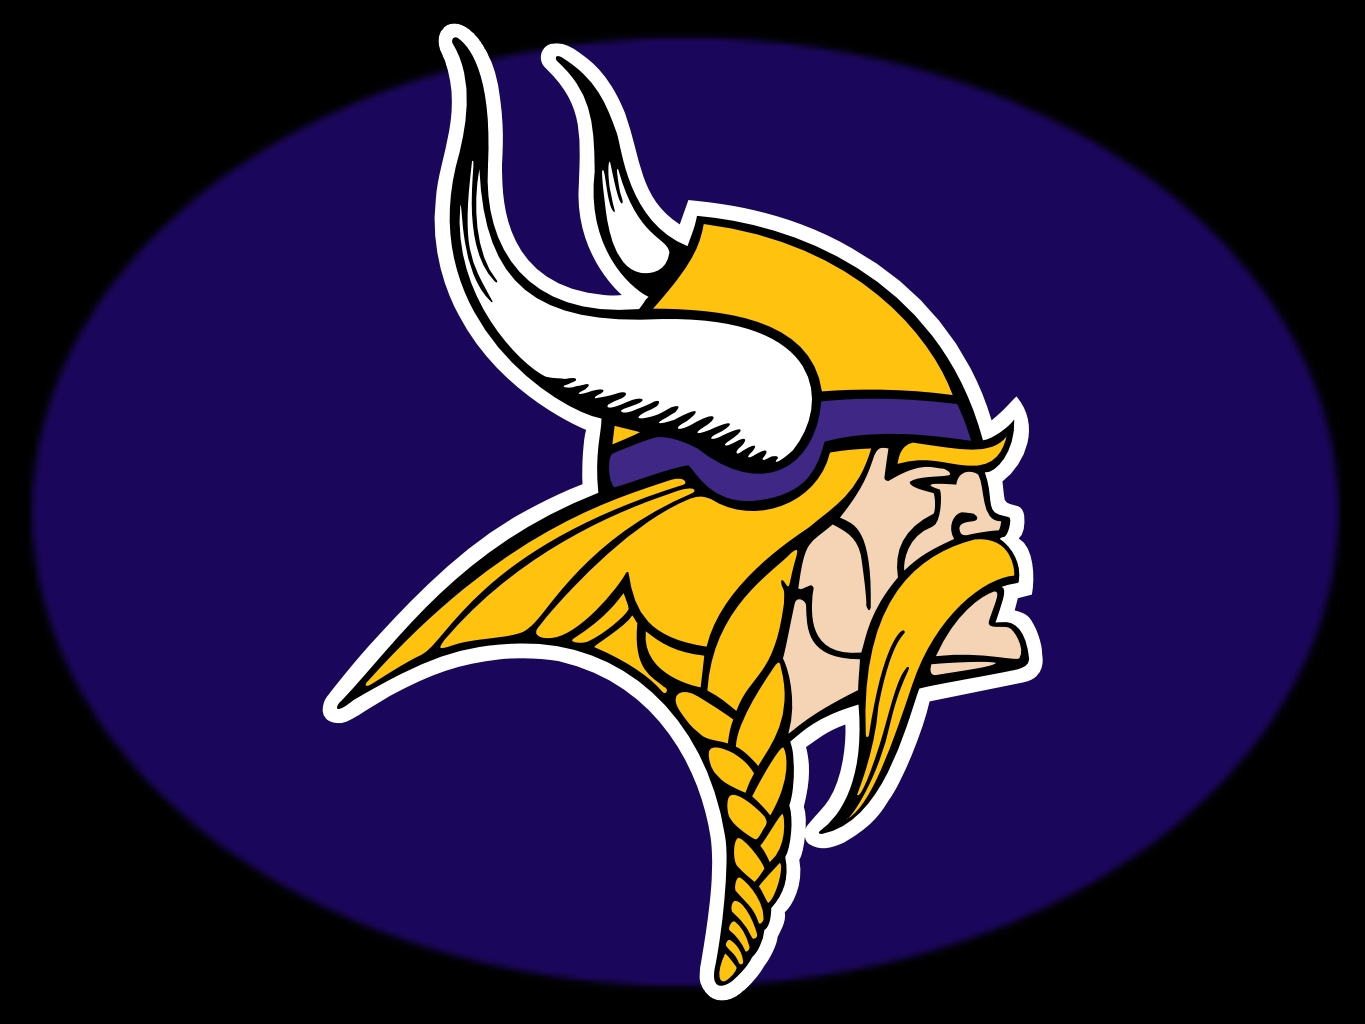 NFL Team Logos   Photo 215 of 416 phombocom 1365x1024